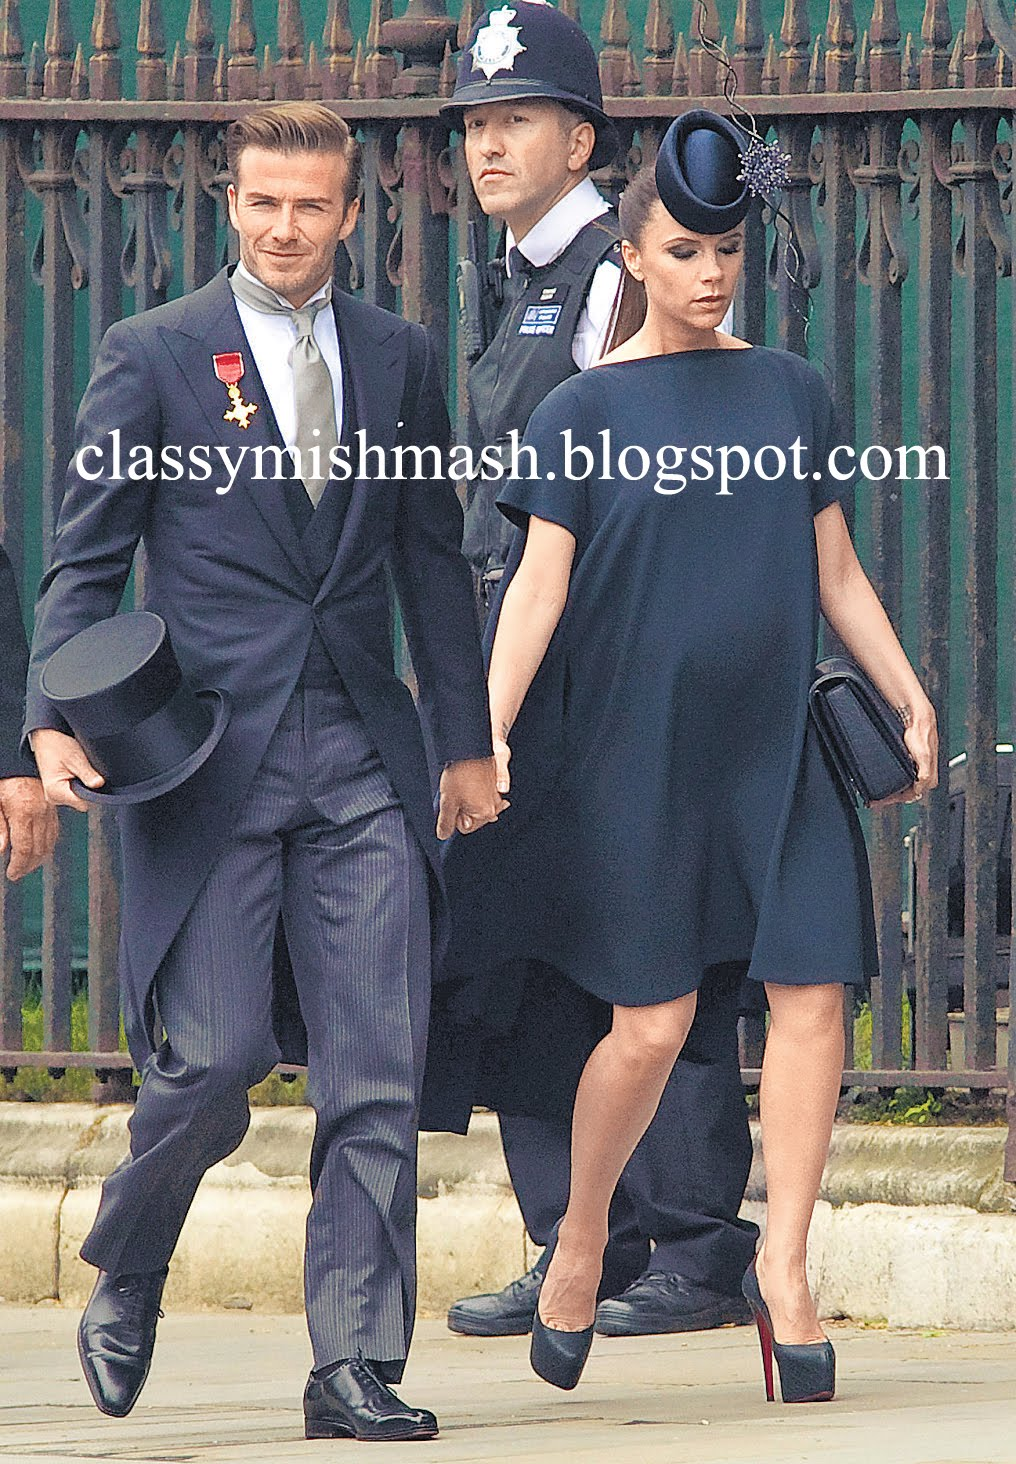 Pictures Of Victoria David Beckham At The Royal Wedding Prince William With Kate Middleton